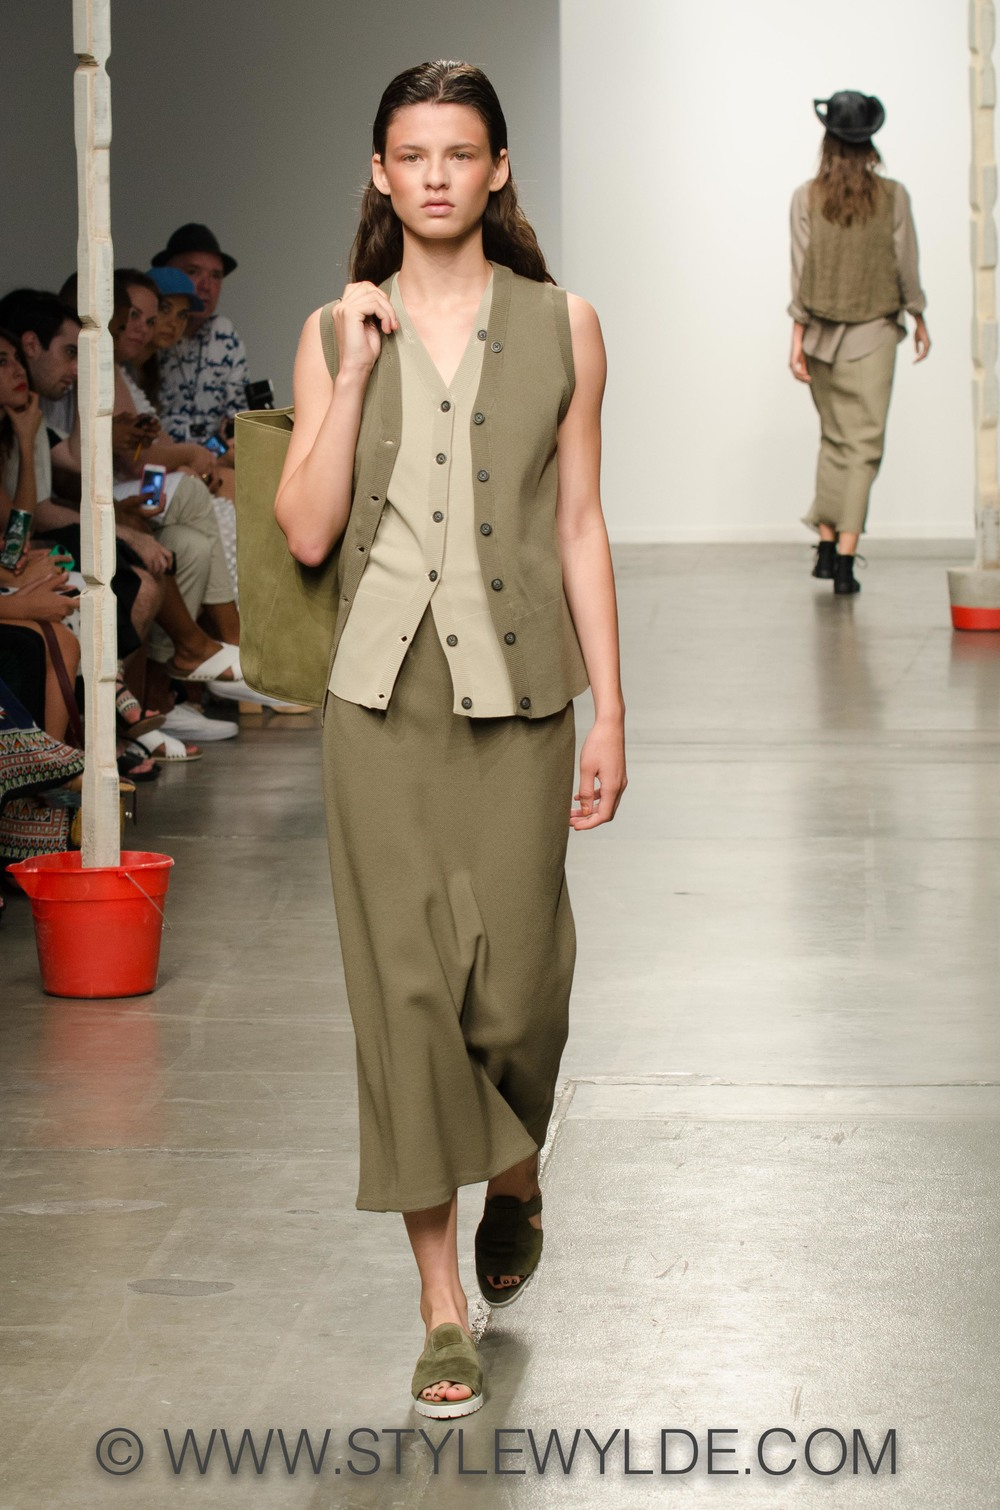 StyleWylde_Creatures_FOH_SS15 (34 of 49).jpg